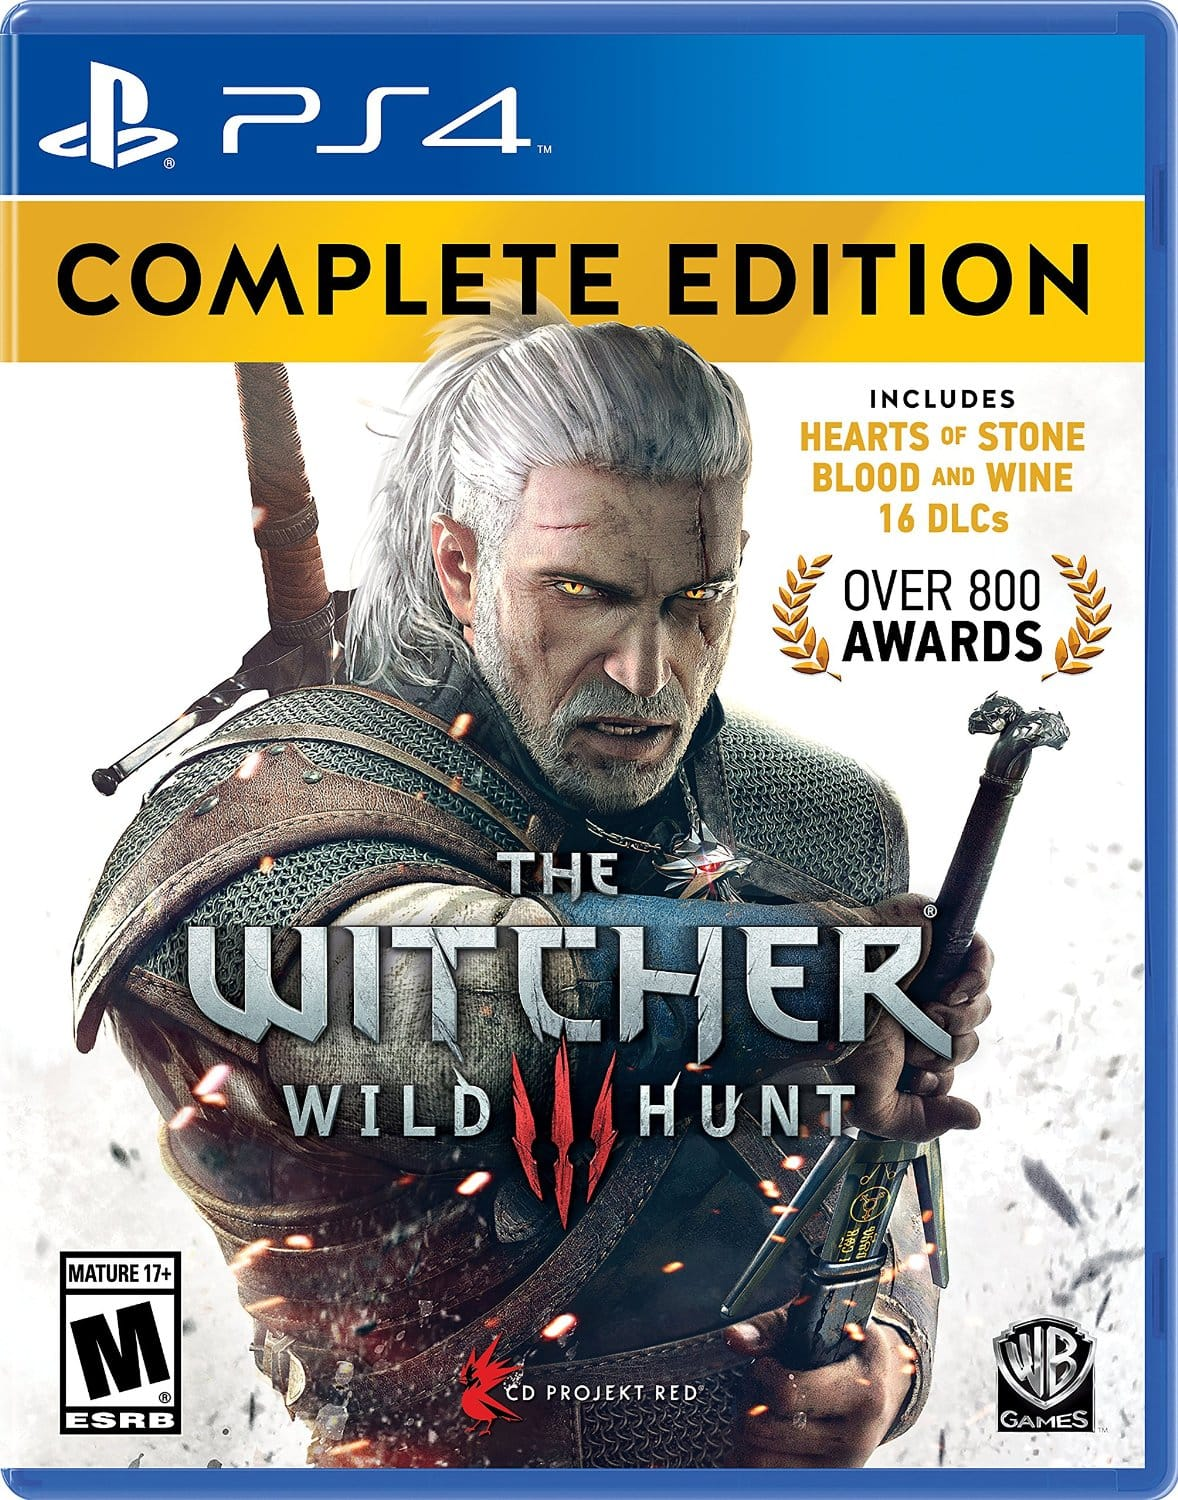 GCU Members: The Witcher 3: Wild Hunt Complete Edition (PS4 or Xbox One) $24.99, Batman: The Telltale Series (PS4 or Xbox One) $15.99 & More + Free Shipping @ Best Buy *11/3-11/5*